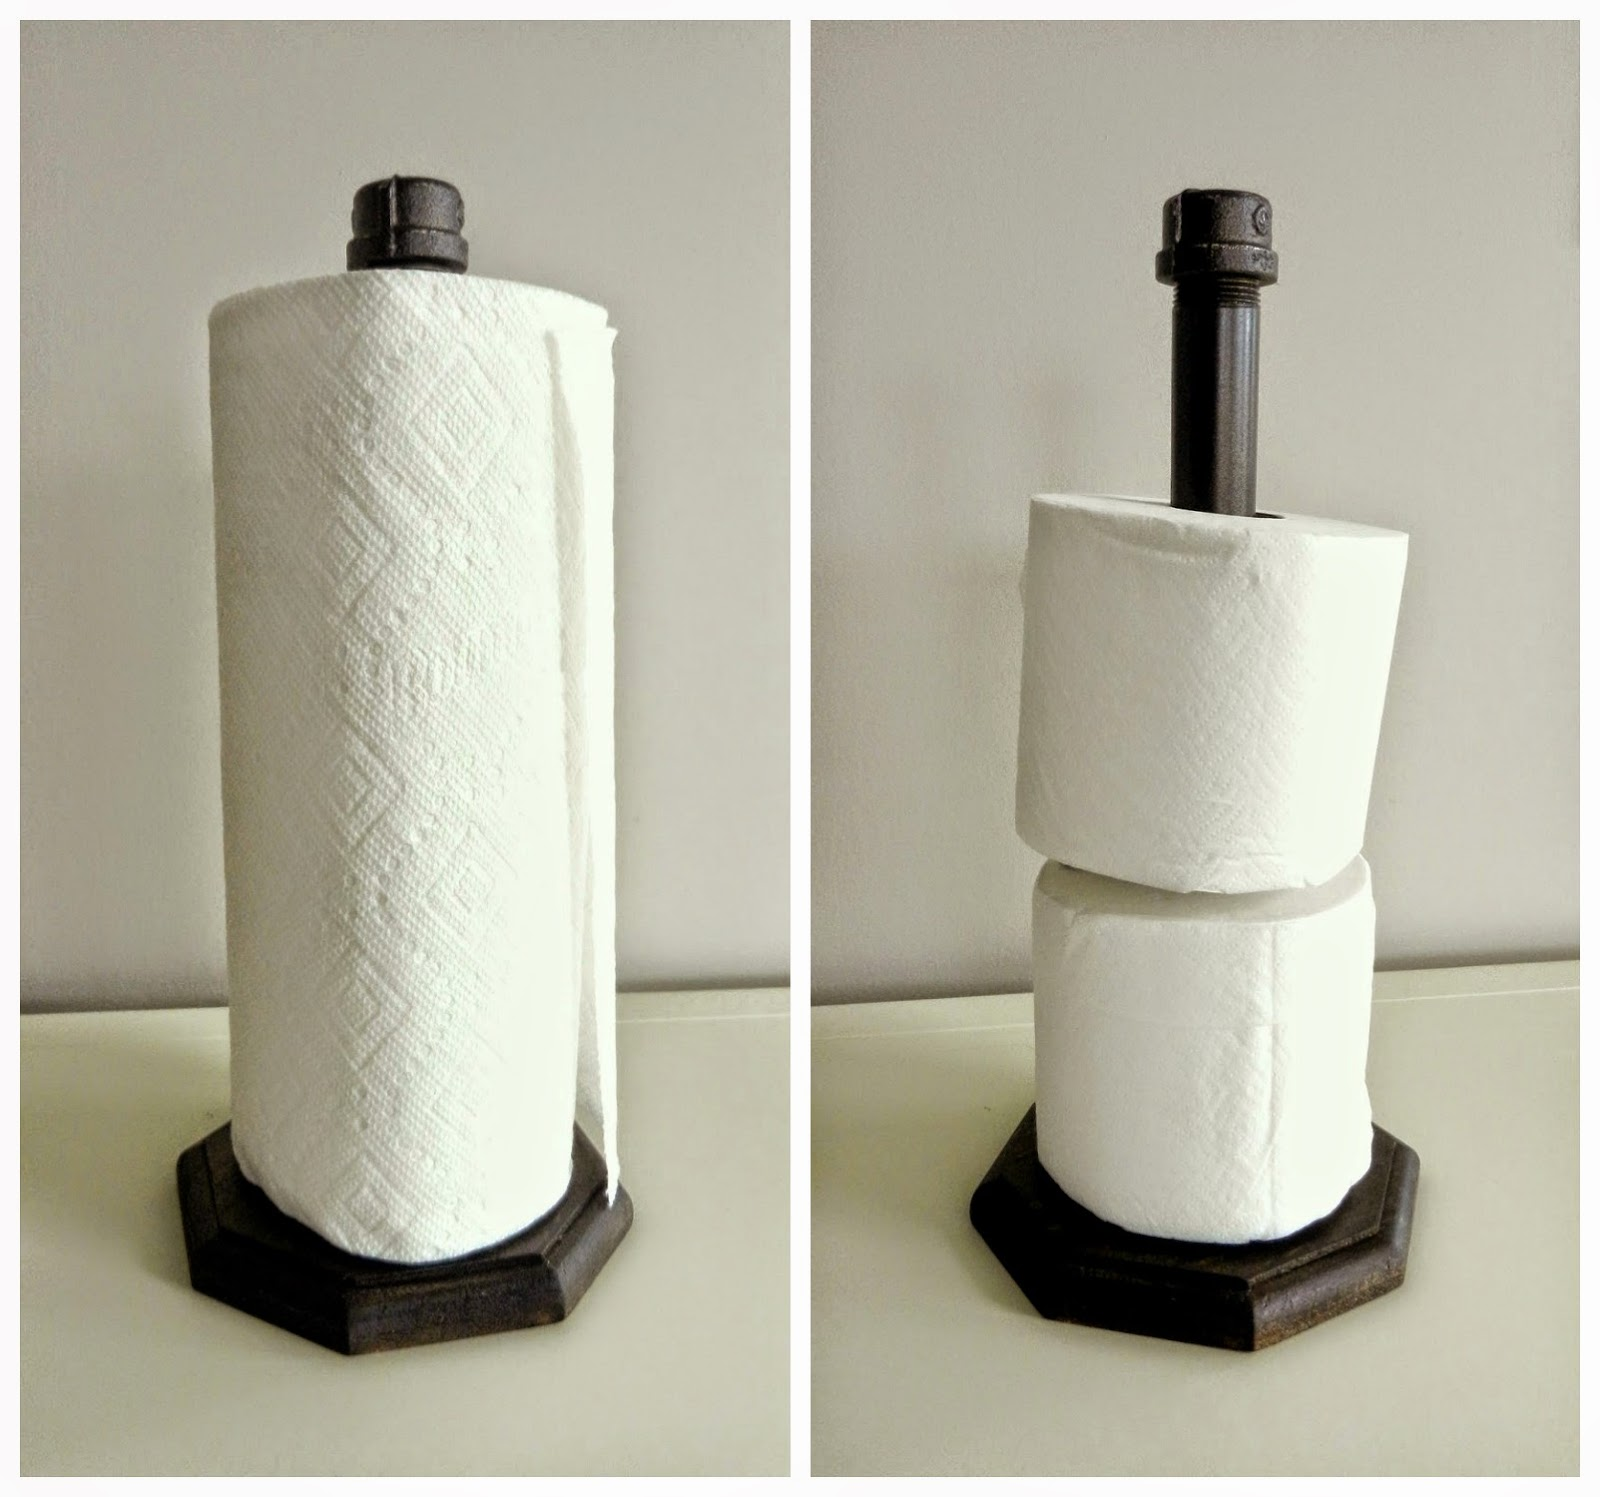 Industrial Paper Towel Holder {Tutorial}